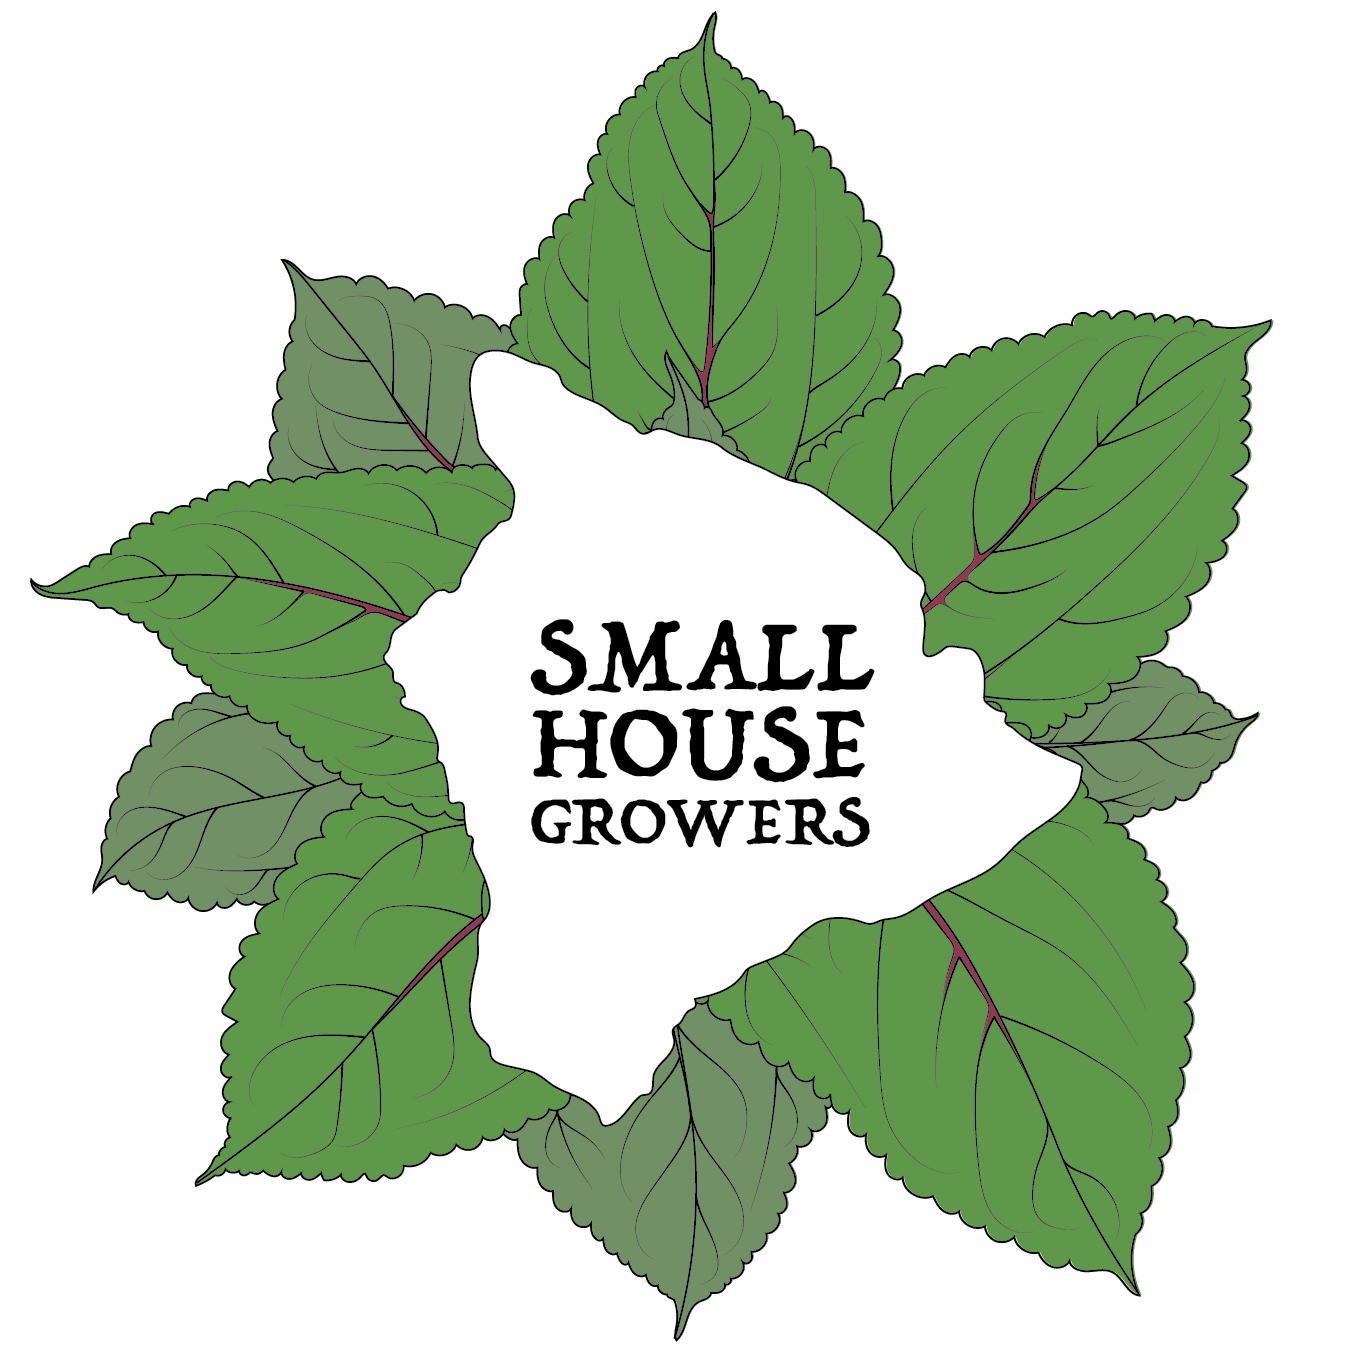 Small House Growers